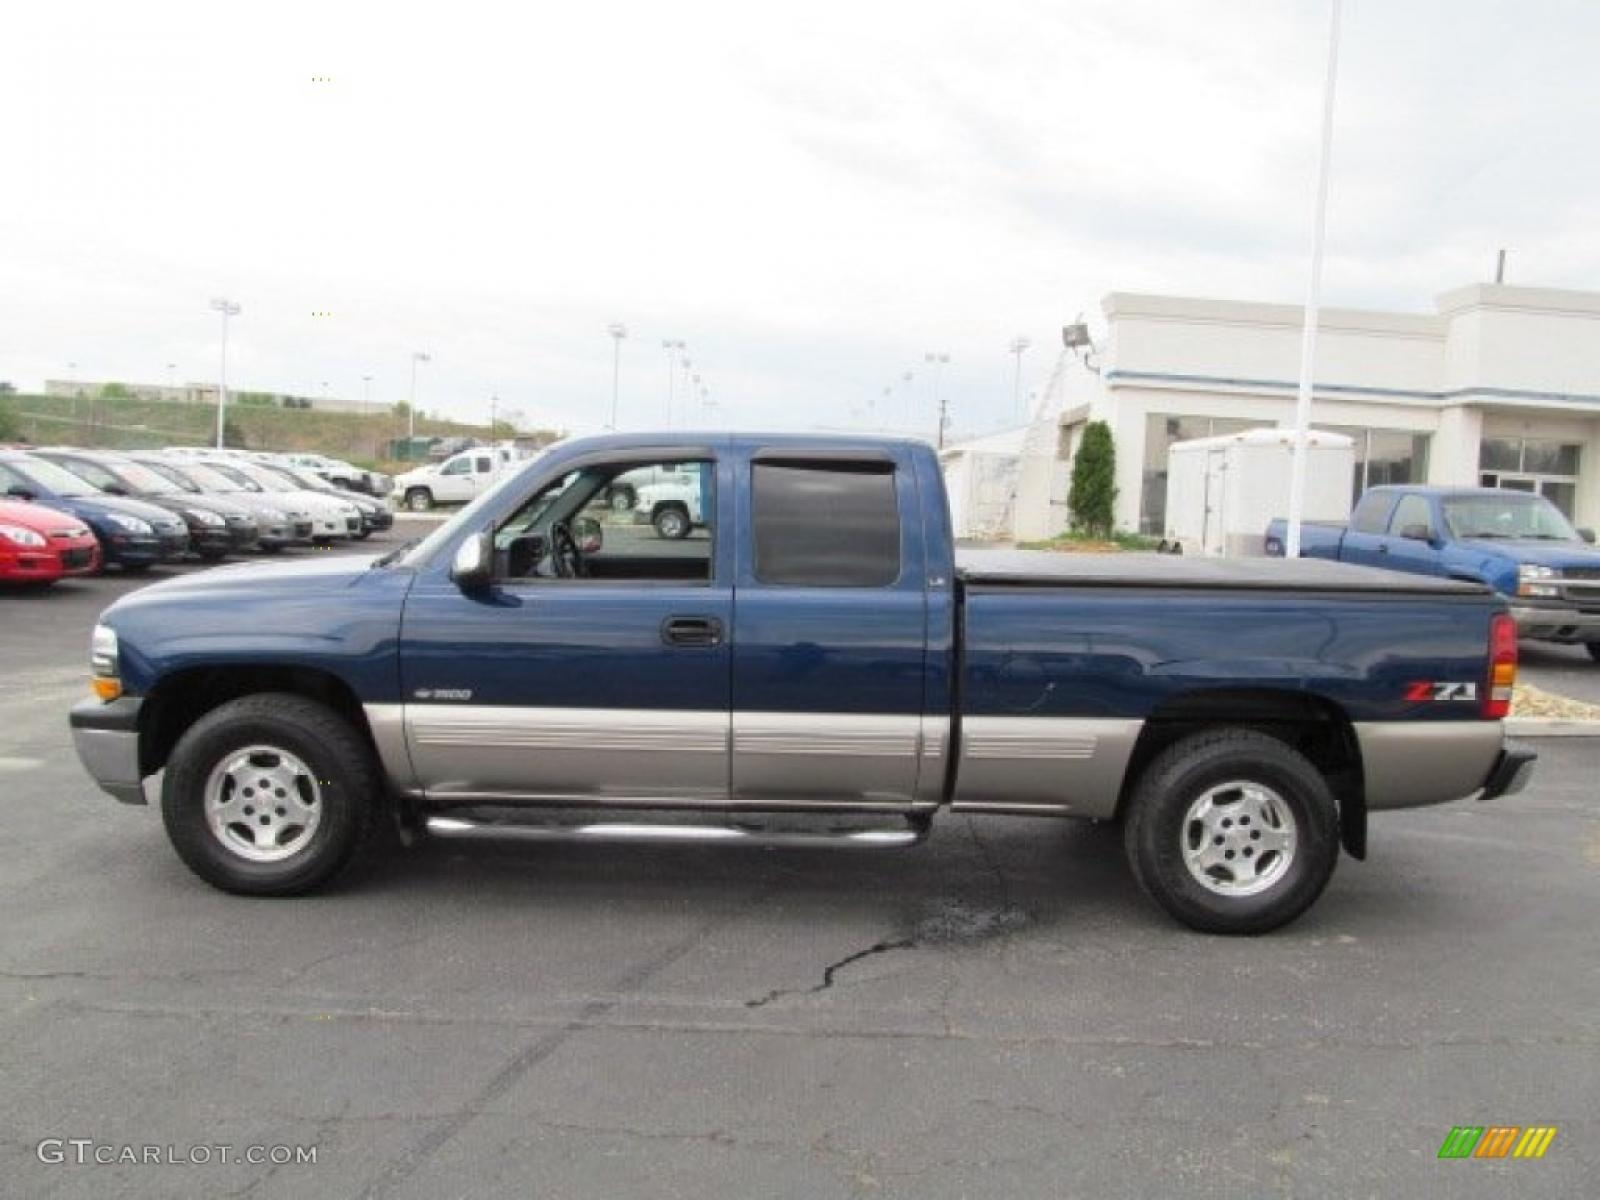 2001 chevrolet silverado 1500 information and photos zombiedrive. Cars Review. Best American Auto & Cars Review